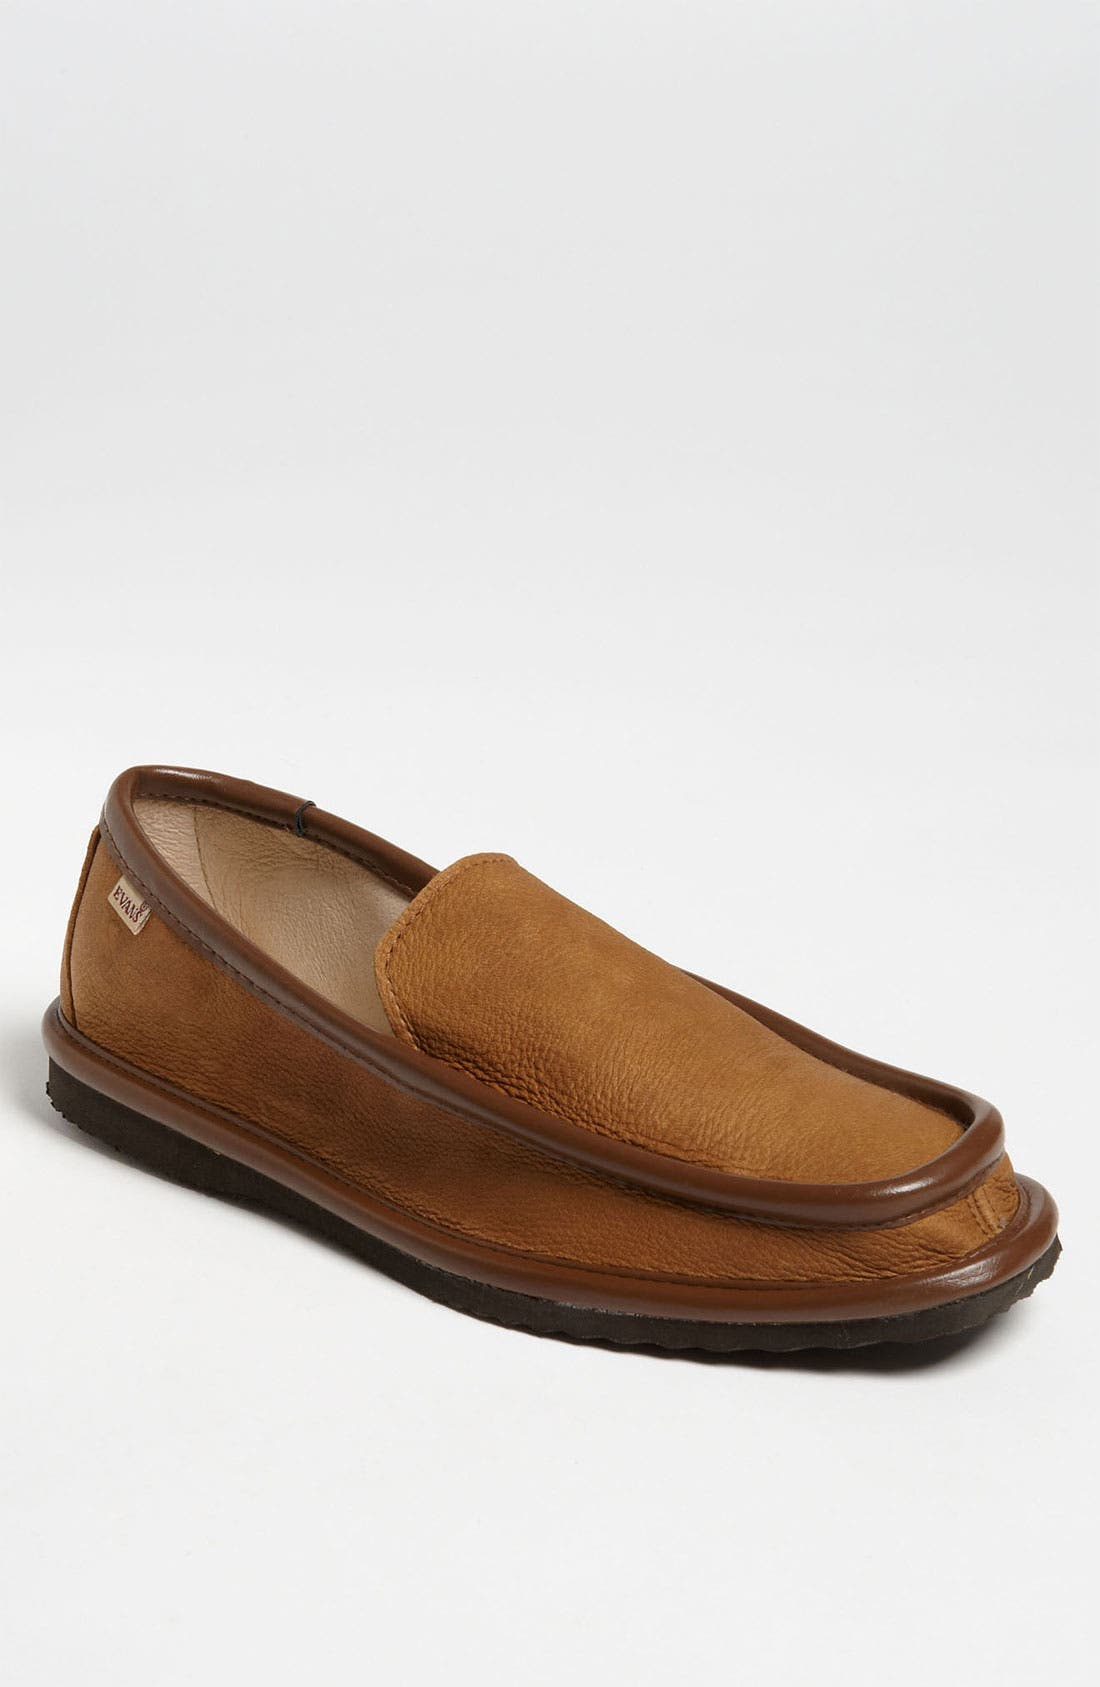 Alternate Image 1 Selected - L.B. Evans 'Deerking' Slipper (Online Only)